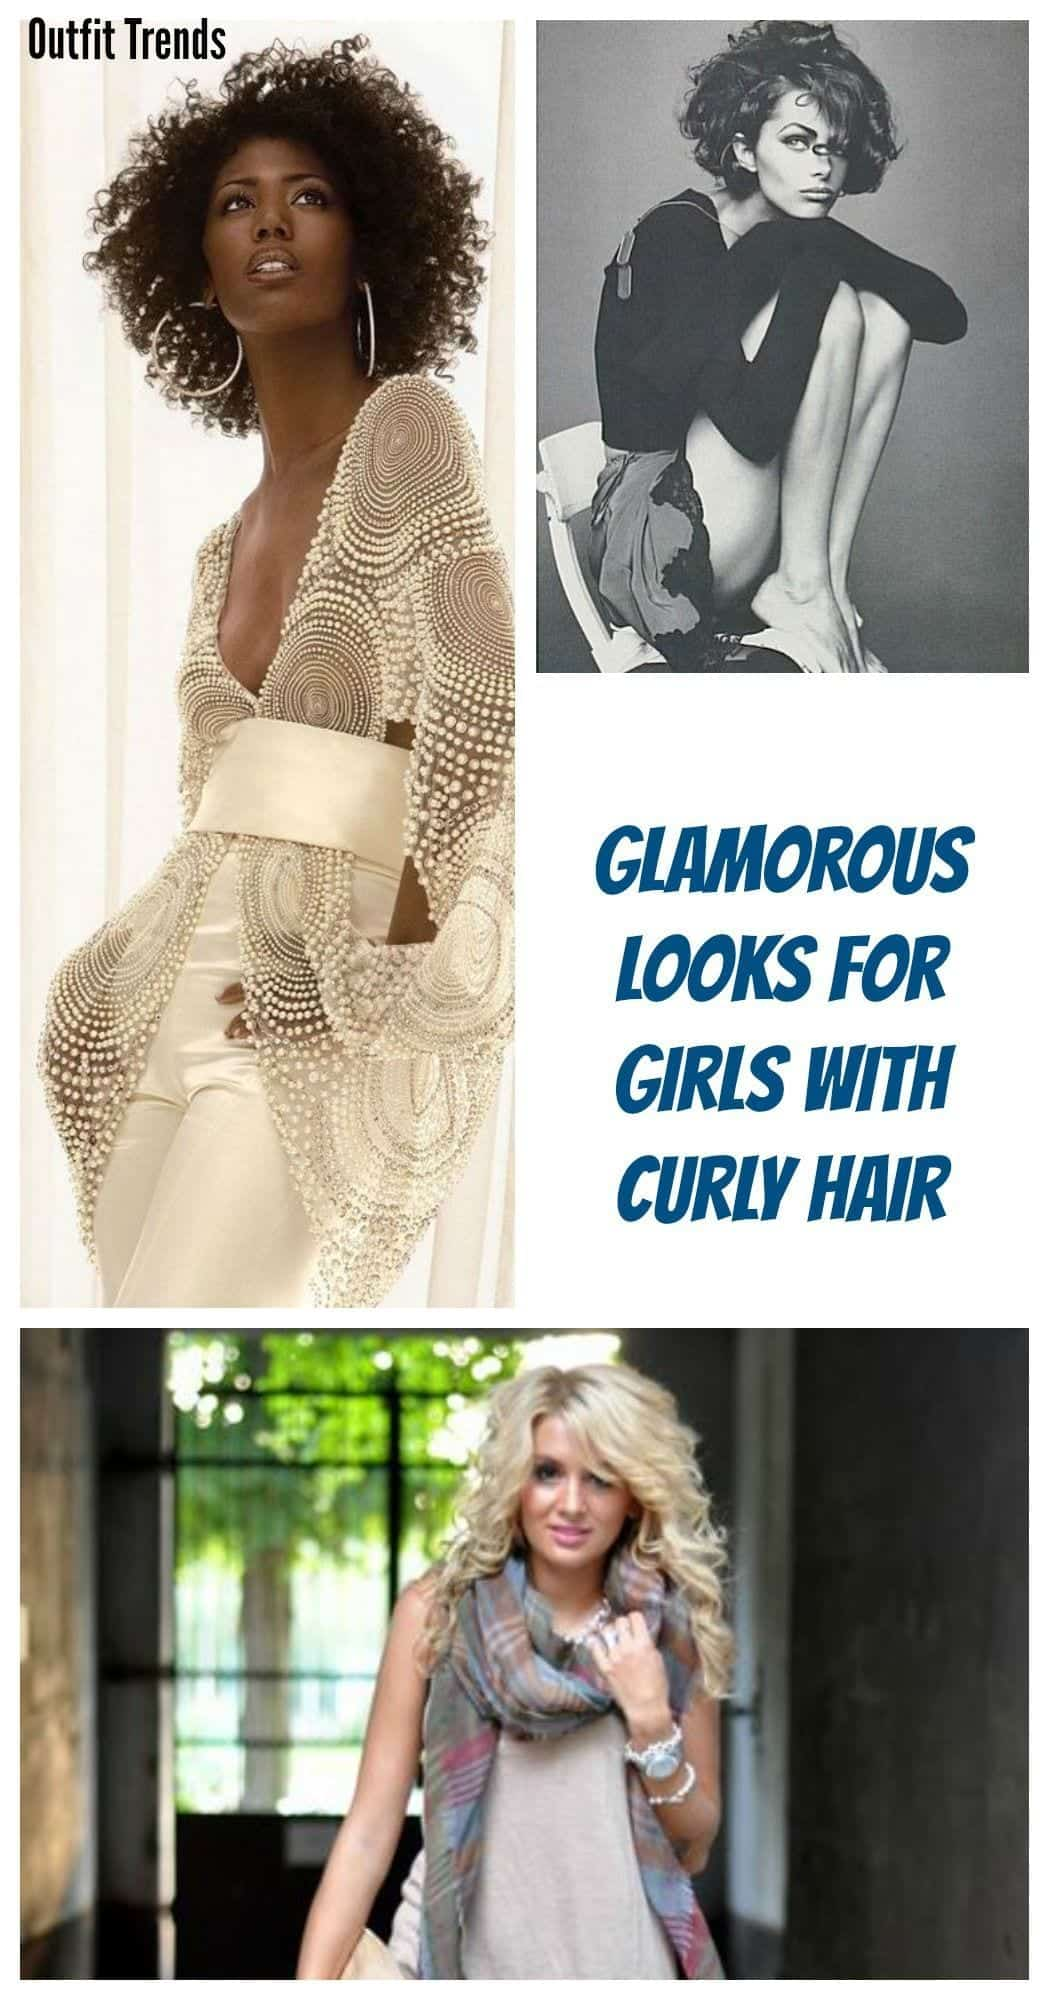 Glamorous Look For Girls With Curly Hair